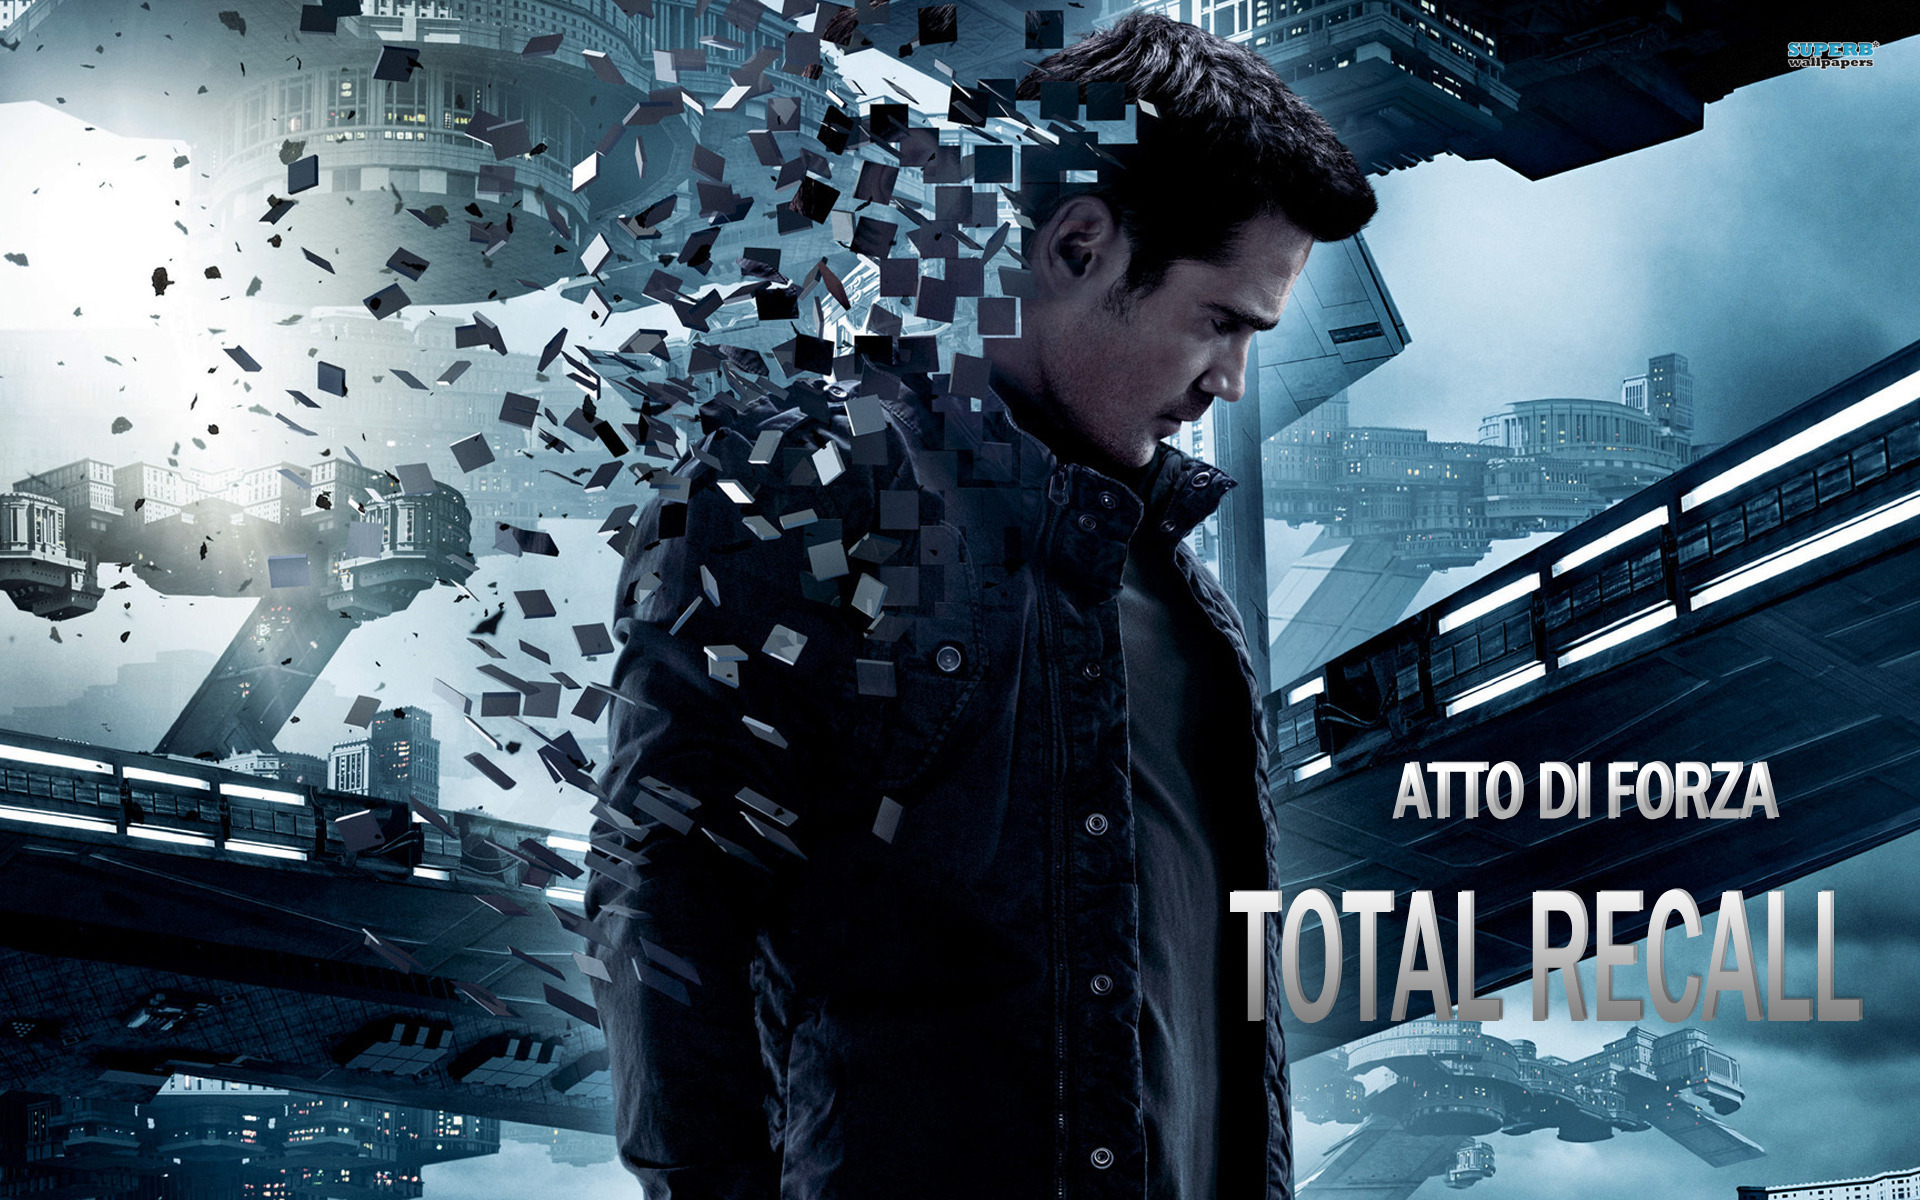 total-recall-movie-13527